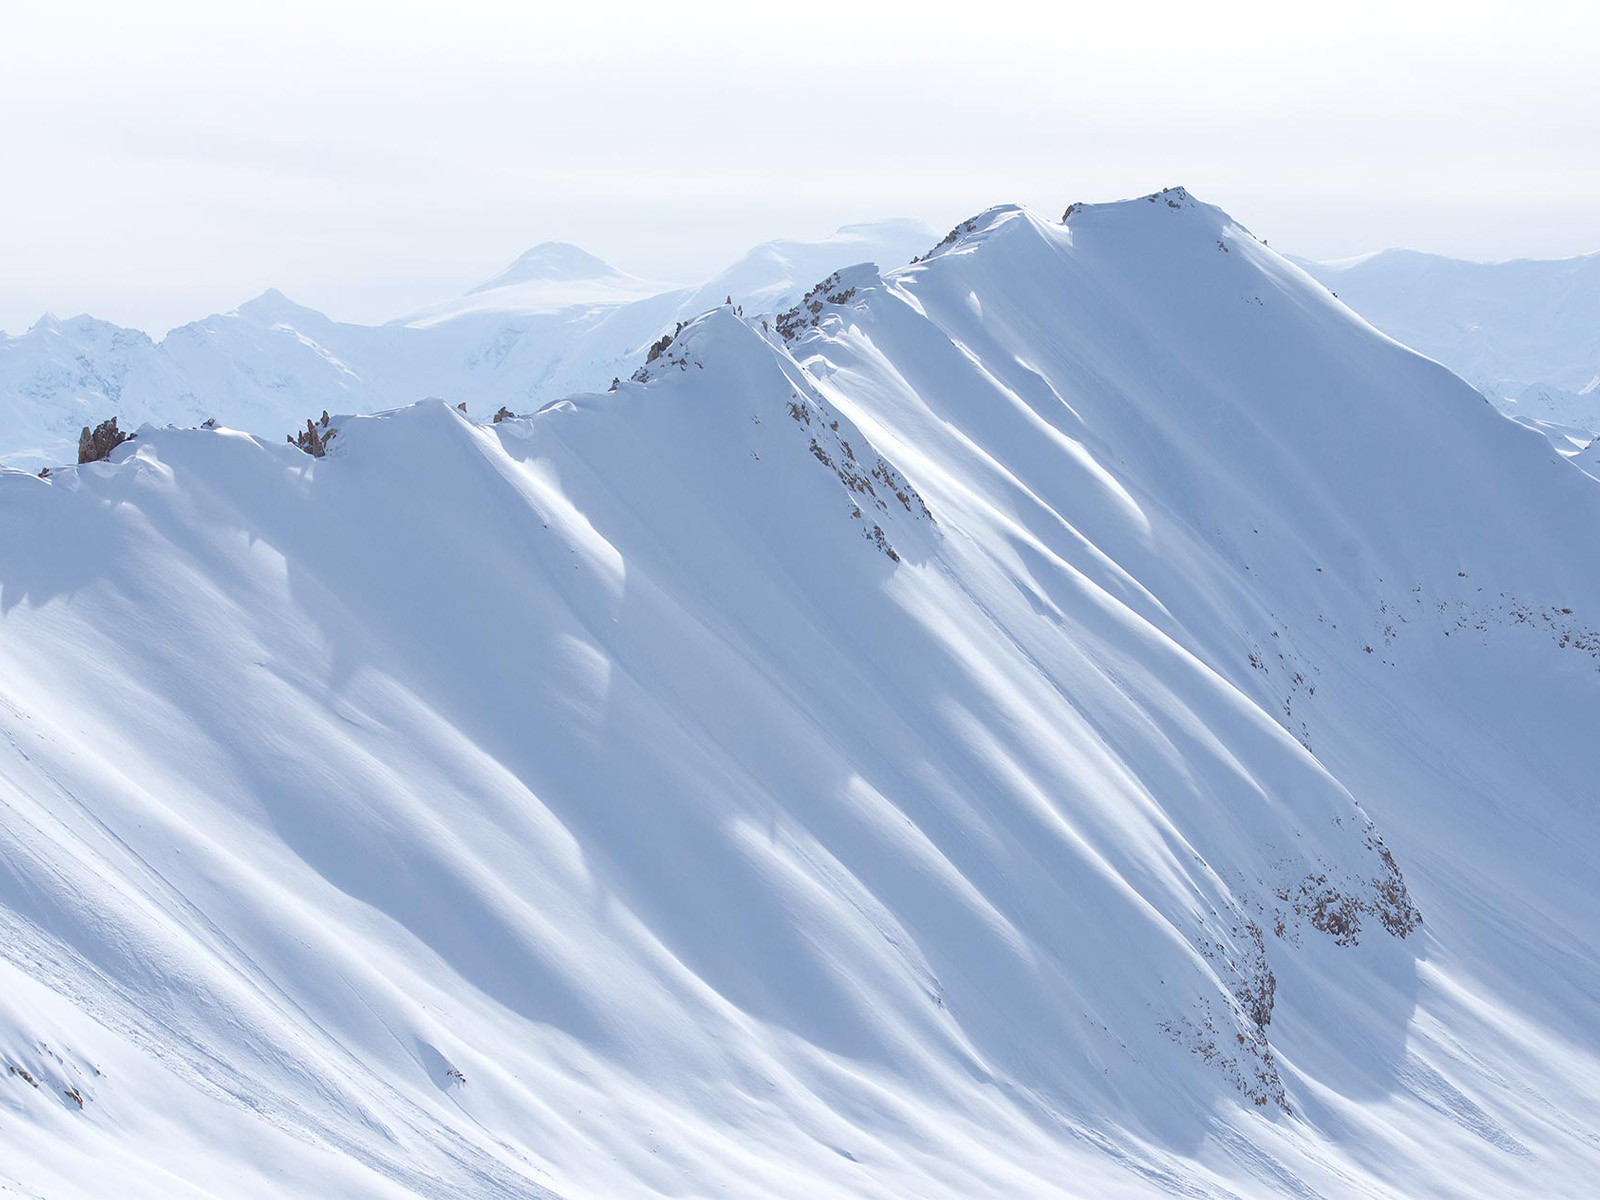 Alaskan mountain ridge covered in snow.